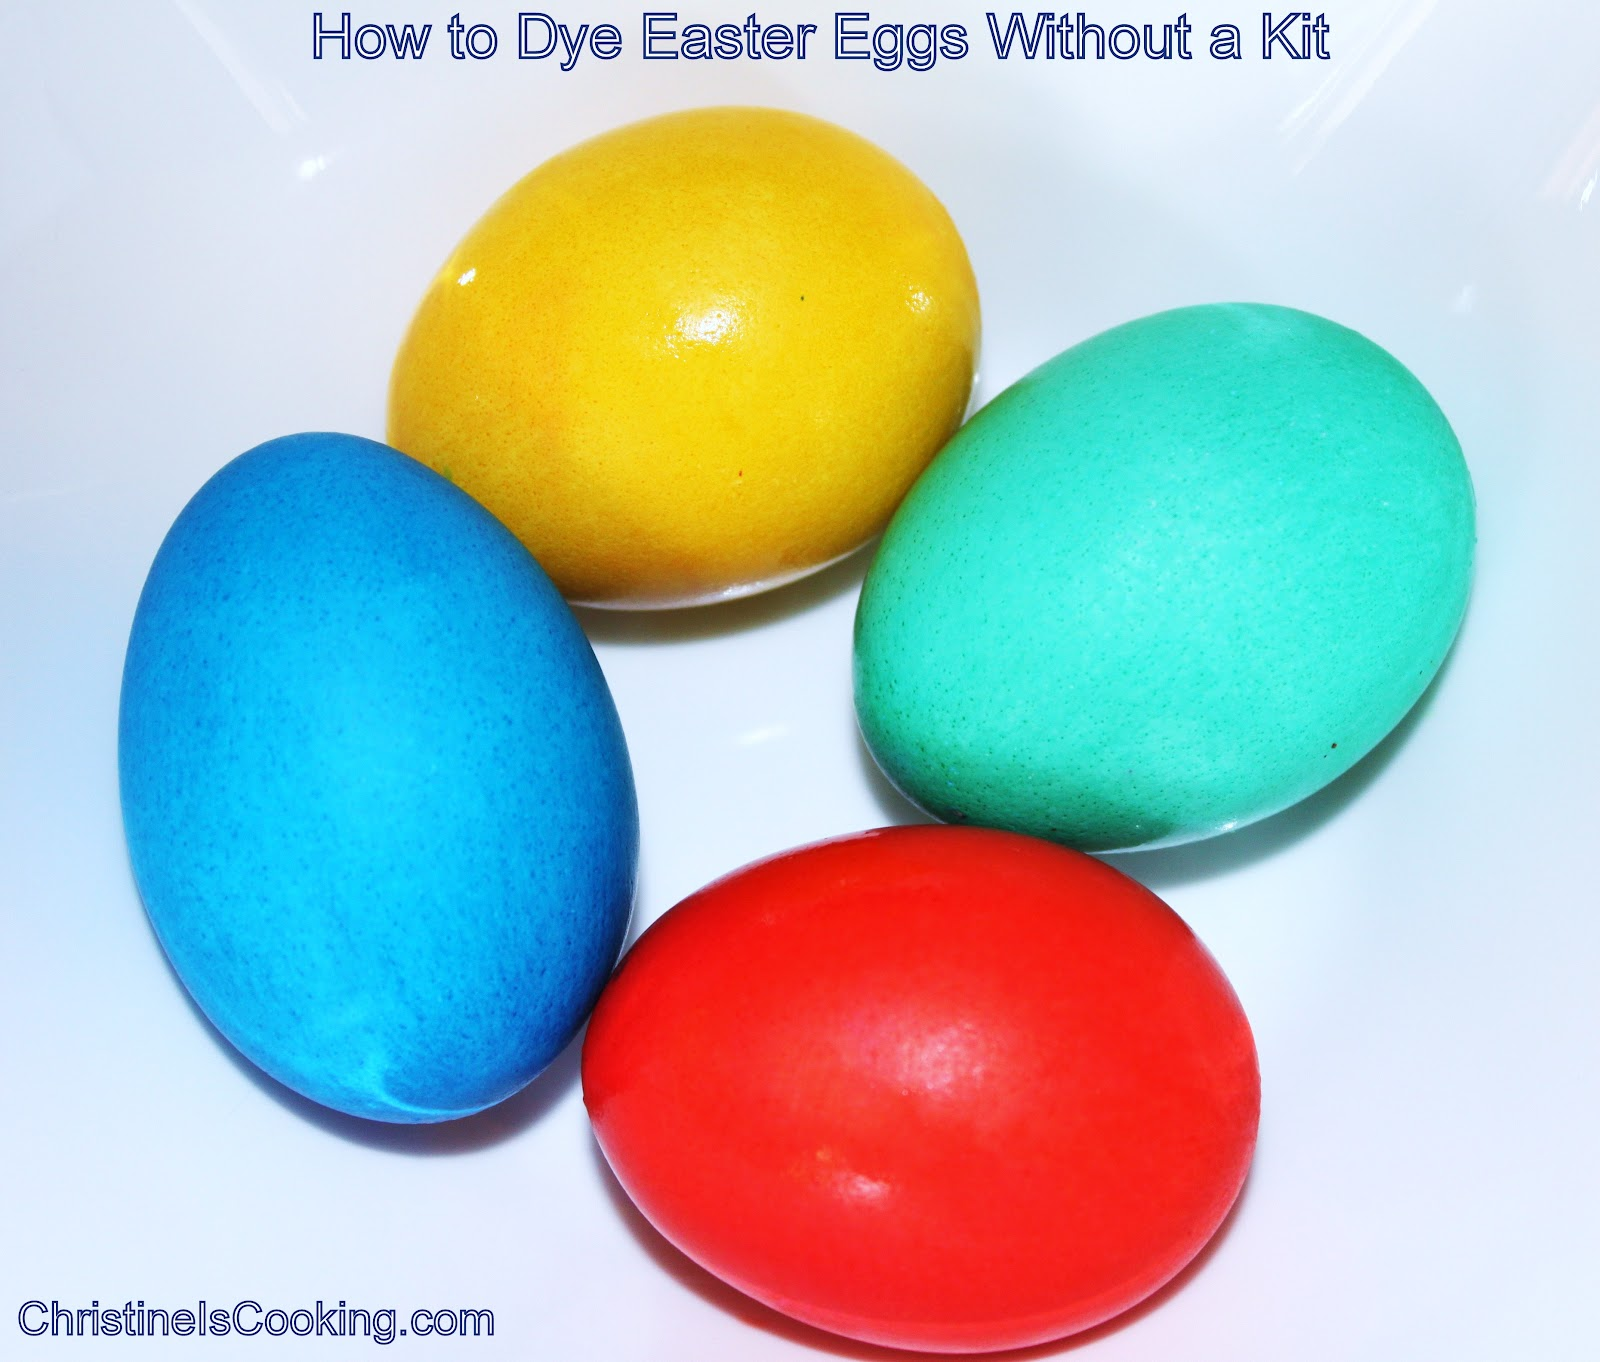 christineiscooking.com: How to Dye Easter Eggs Without a Kit (food ...